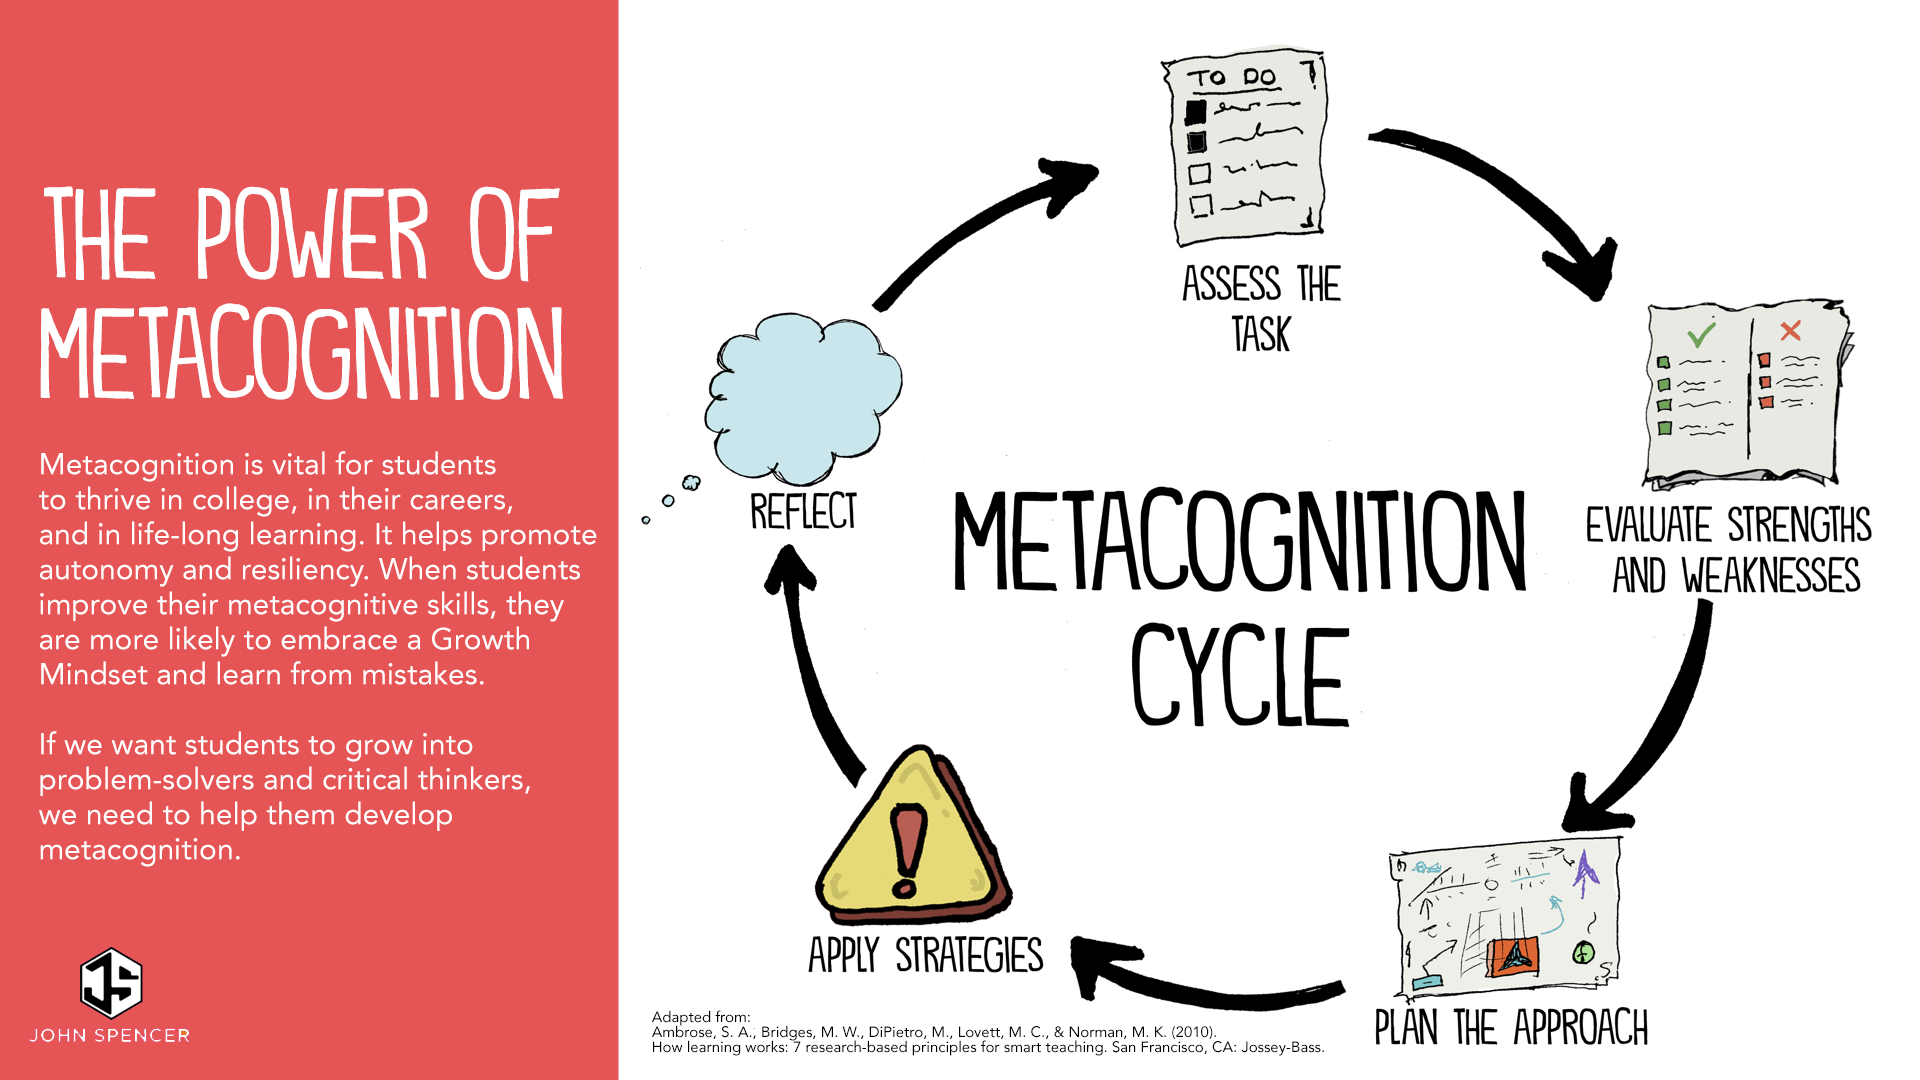 The Metacognition Cycle - via John Spencer